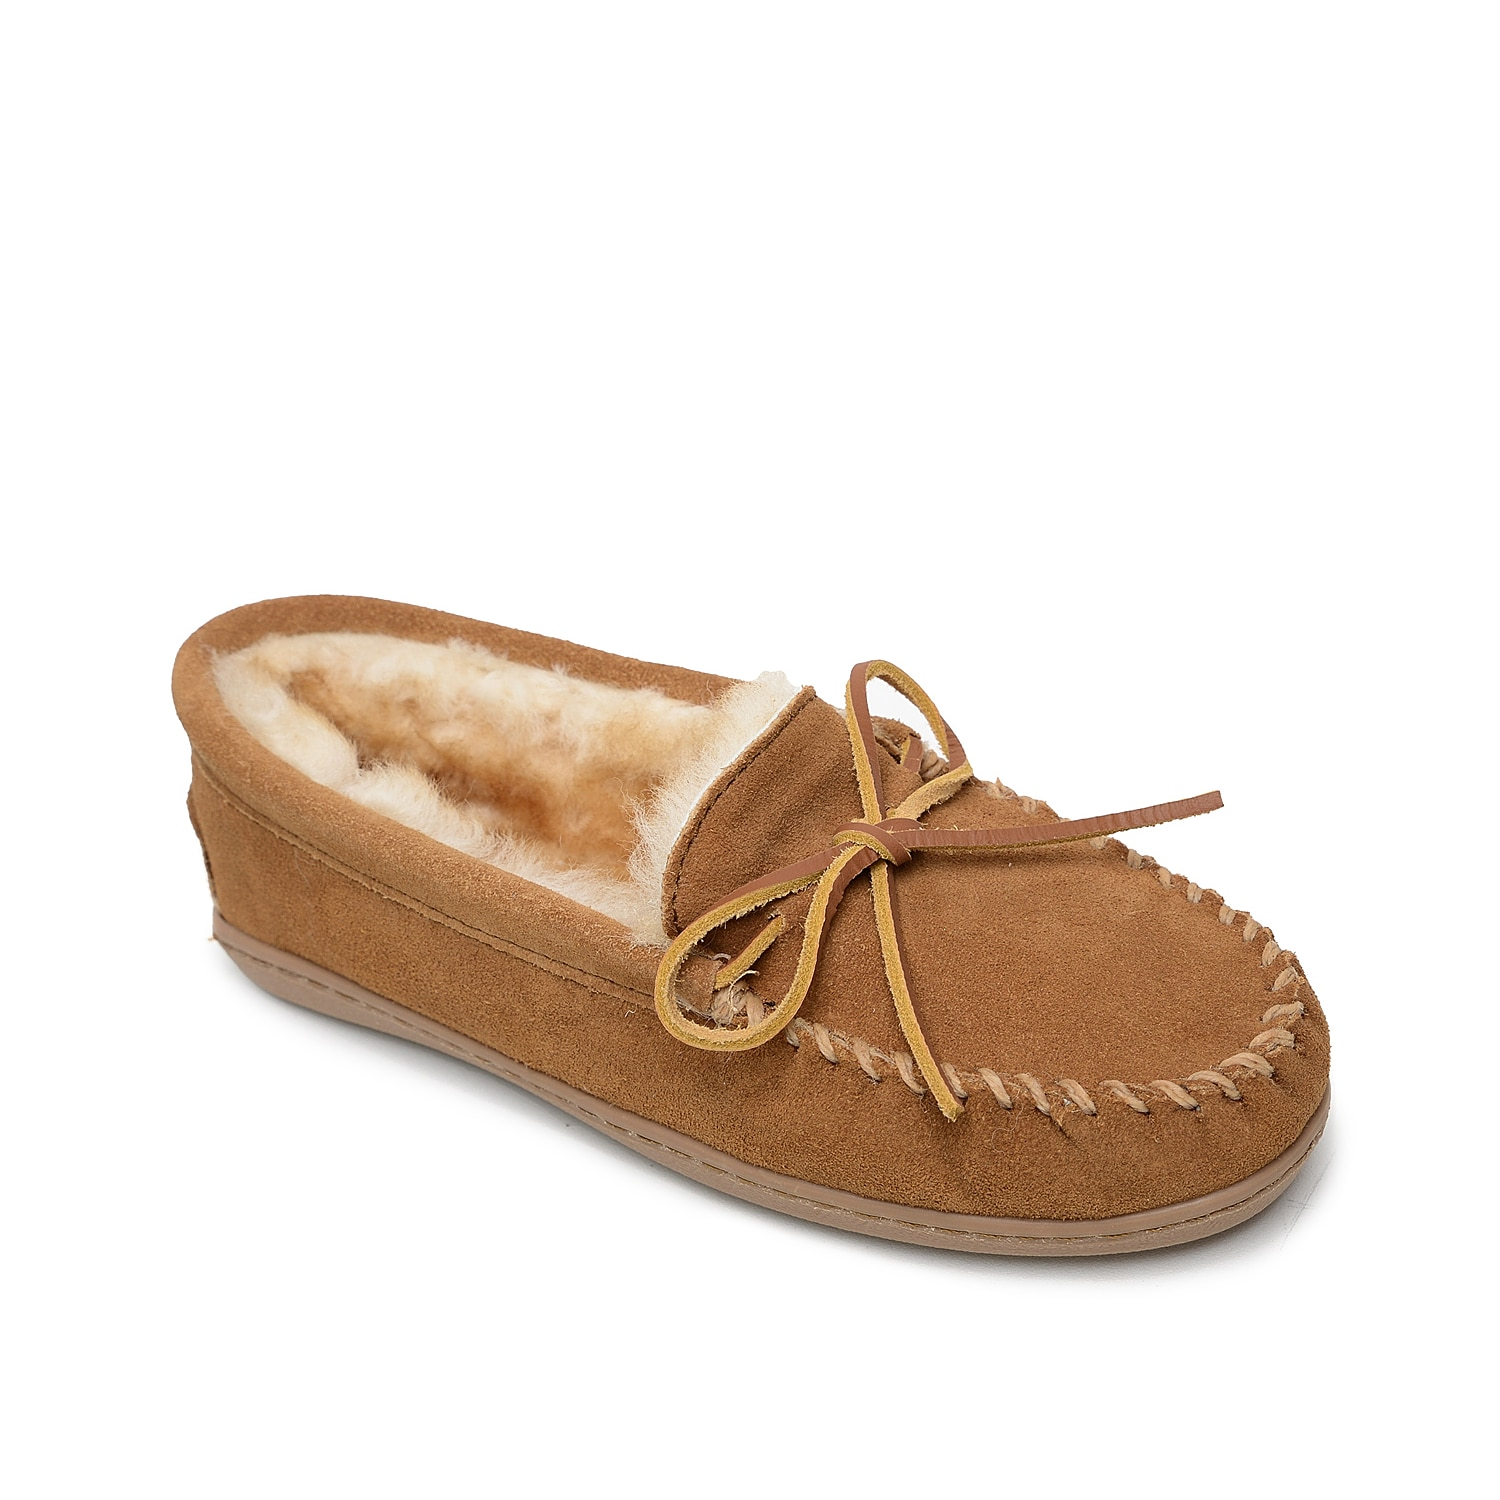 Be it indoors or outdoors, the Minnetonka Sheepskin Hardsole moccasin slipper can be a cute option. Rich suede construction with raw-hide laces is backed by a plush shearling lining for keeping your foot free from moisture.